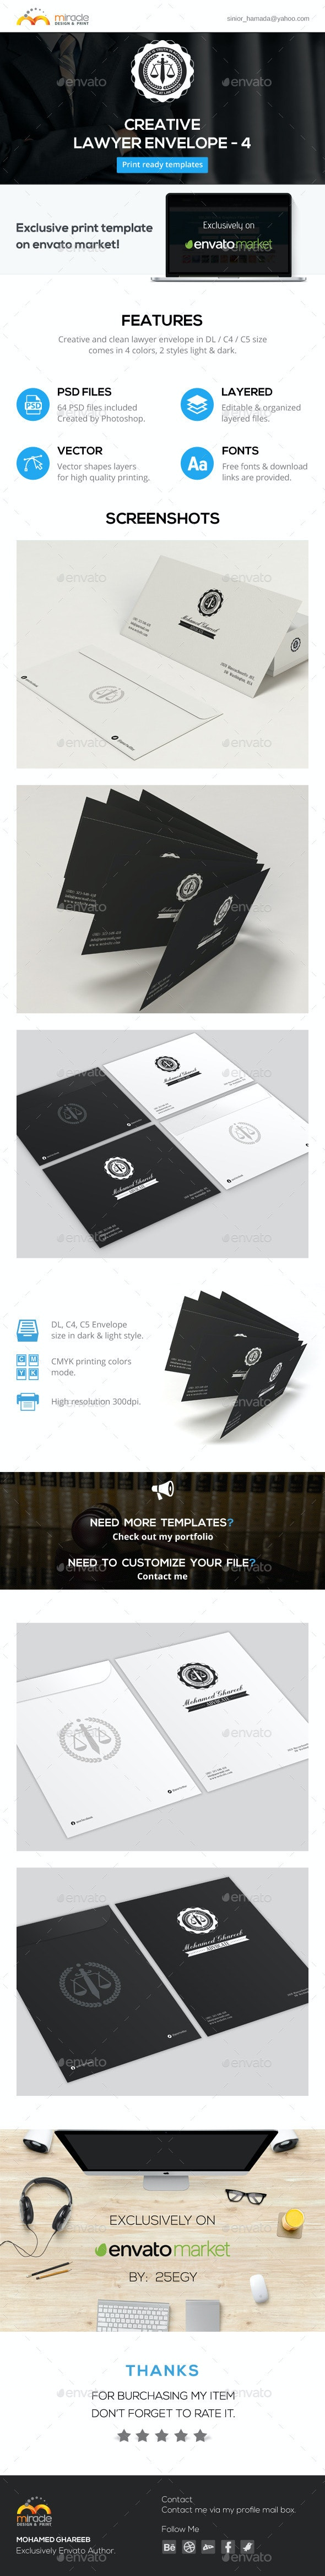 Creative Lawyer Envelope #4 - Stationery Print Templates